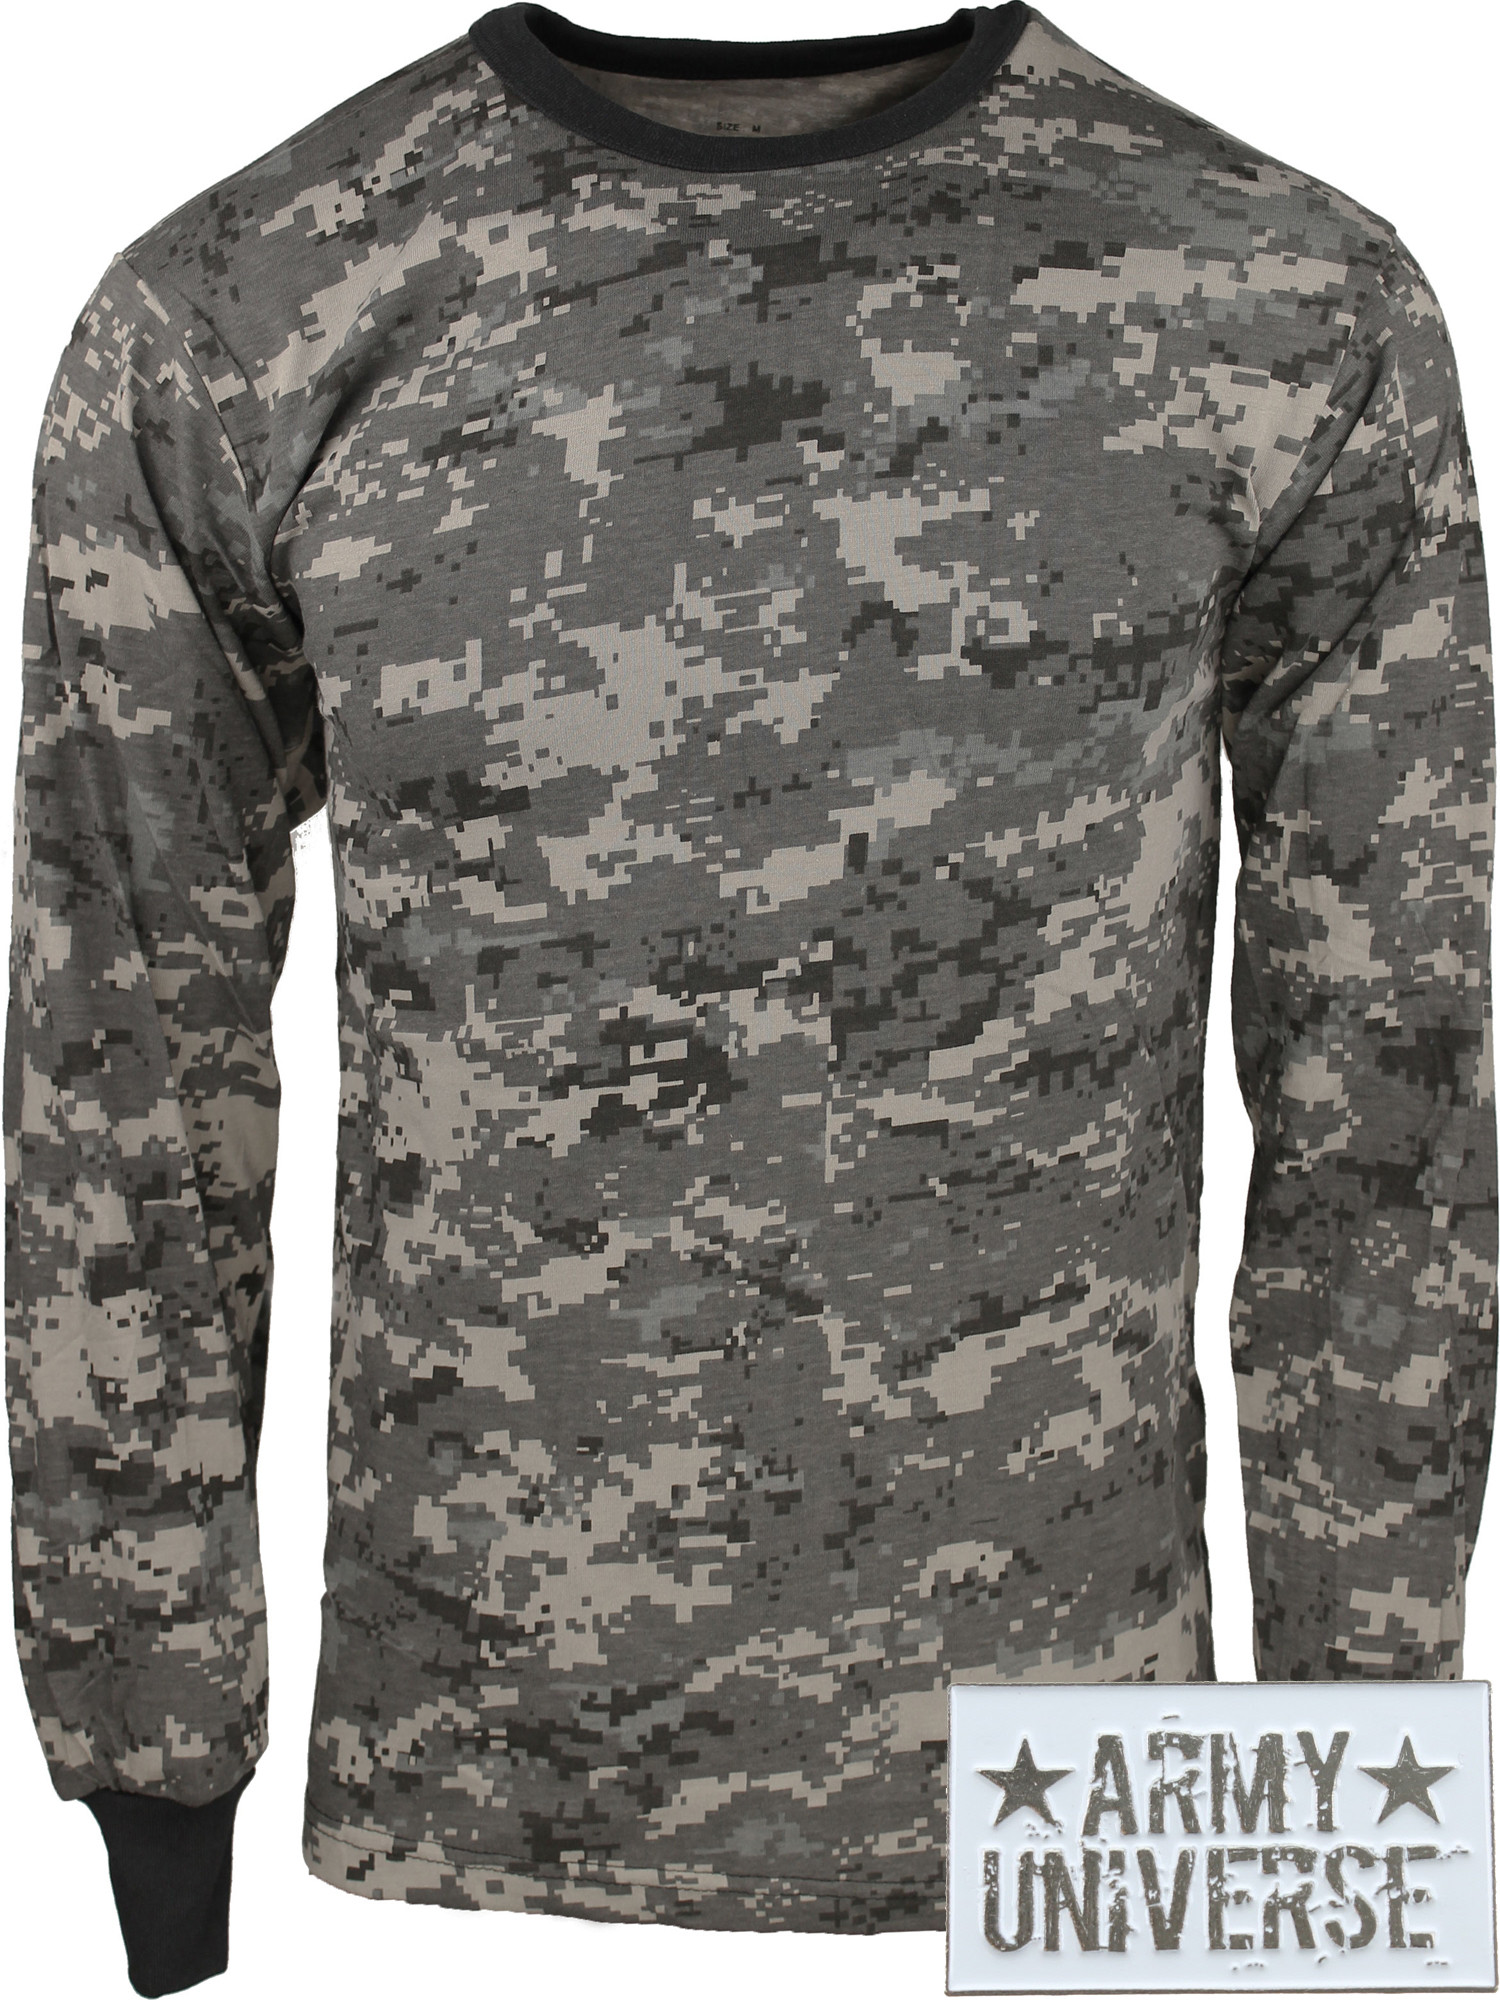 ... Subdued Urban Digital Camouflage Military Crewneck Long Sleeve T Shirt  w  ArmyUniverse® Pin ... 066064103